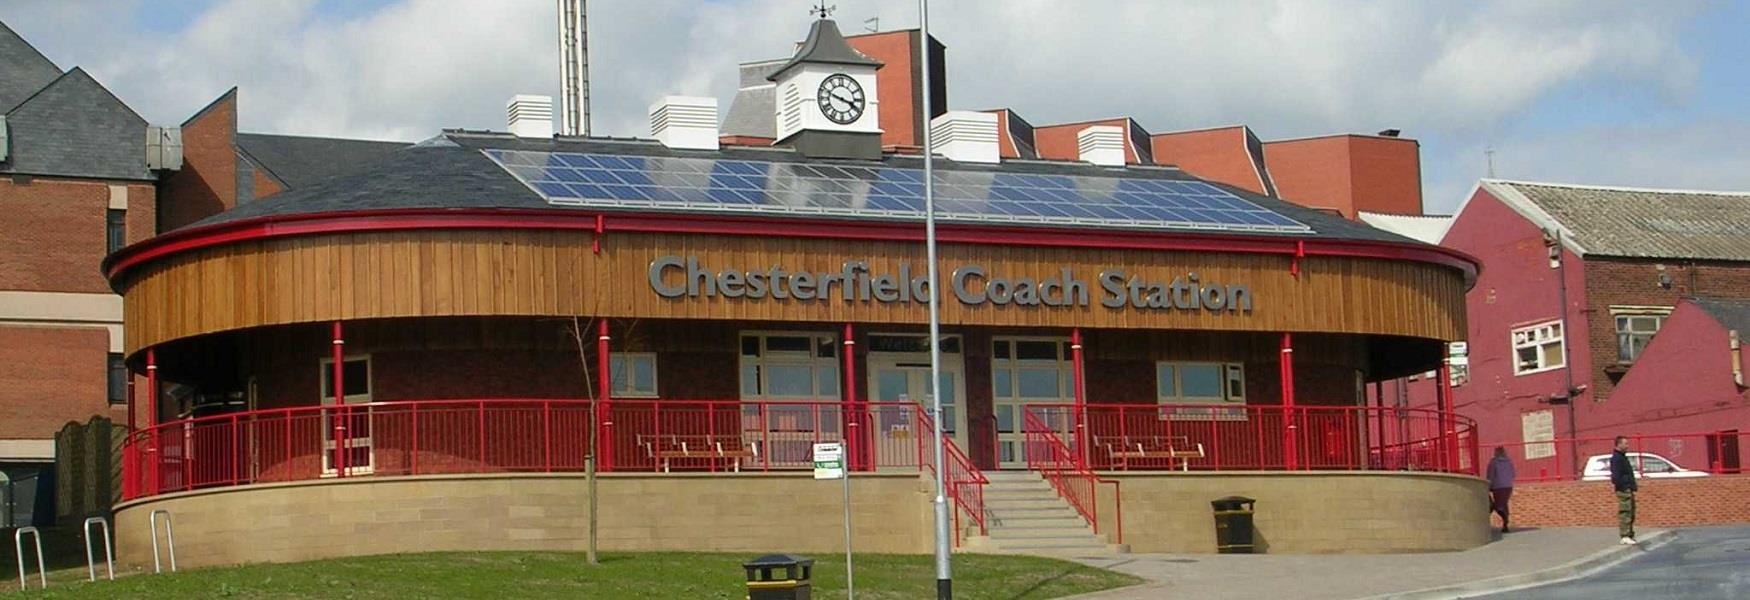 Chesterfield Coach Station